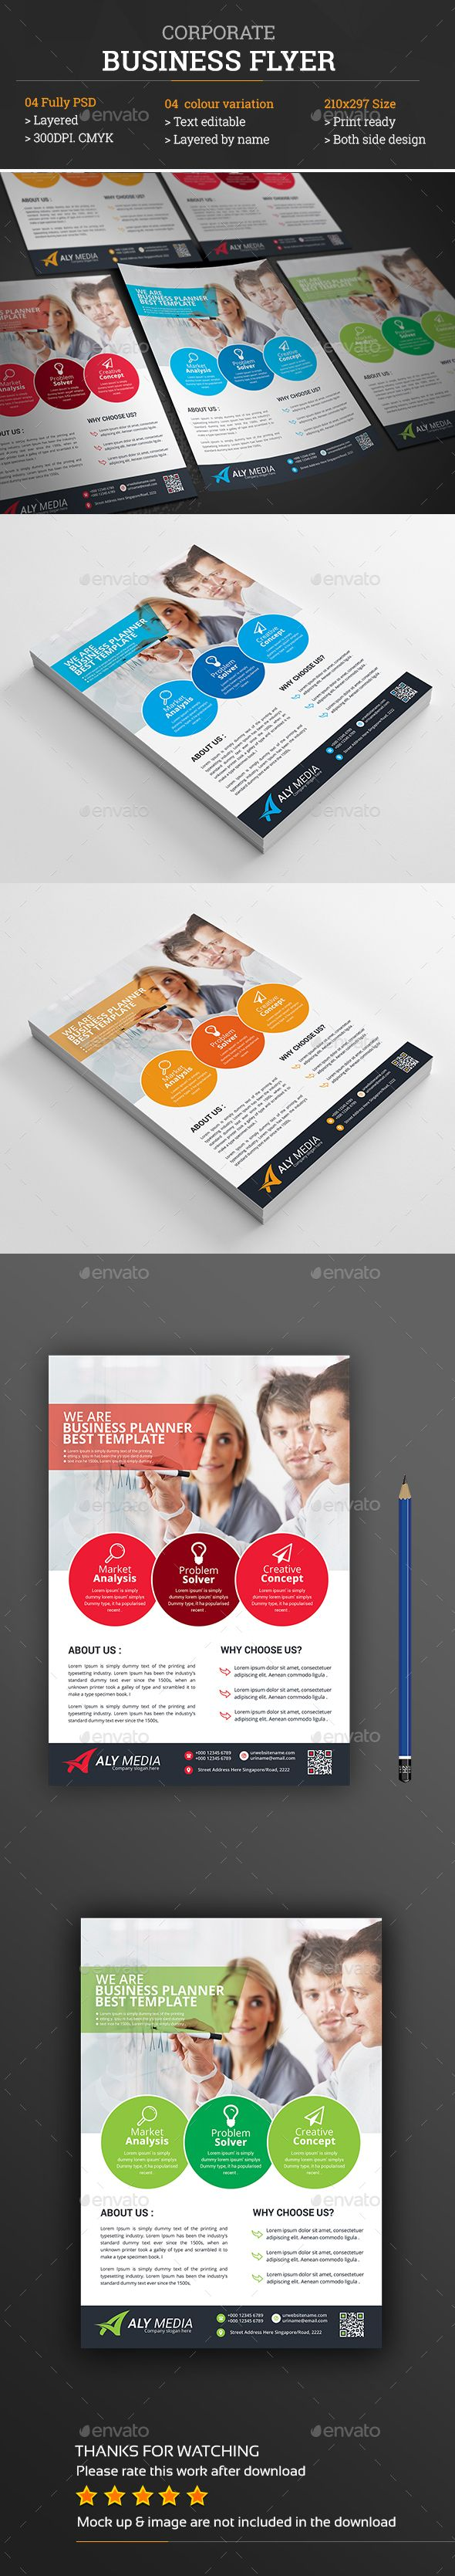 10 best business flyers images on pinterest